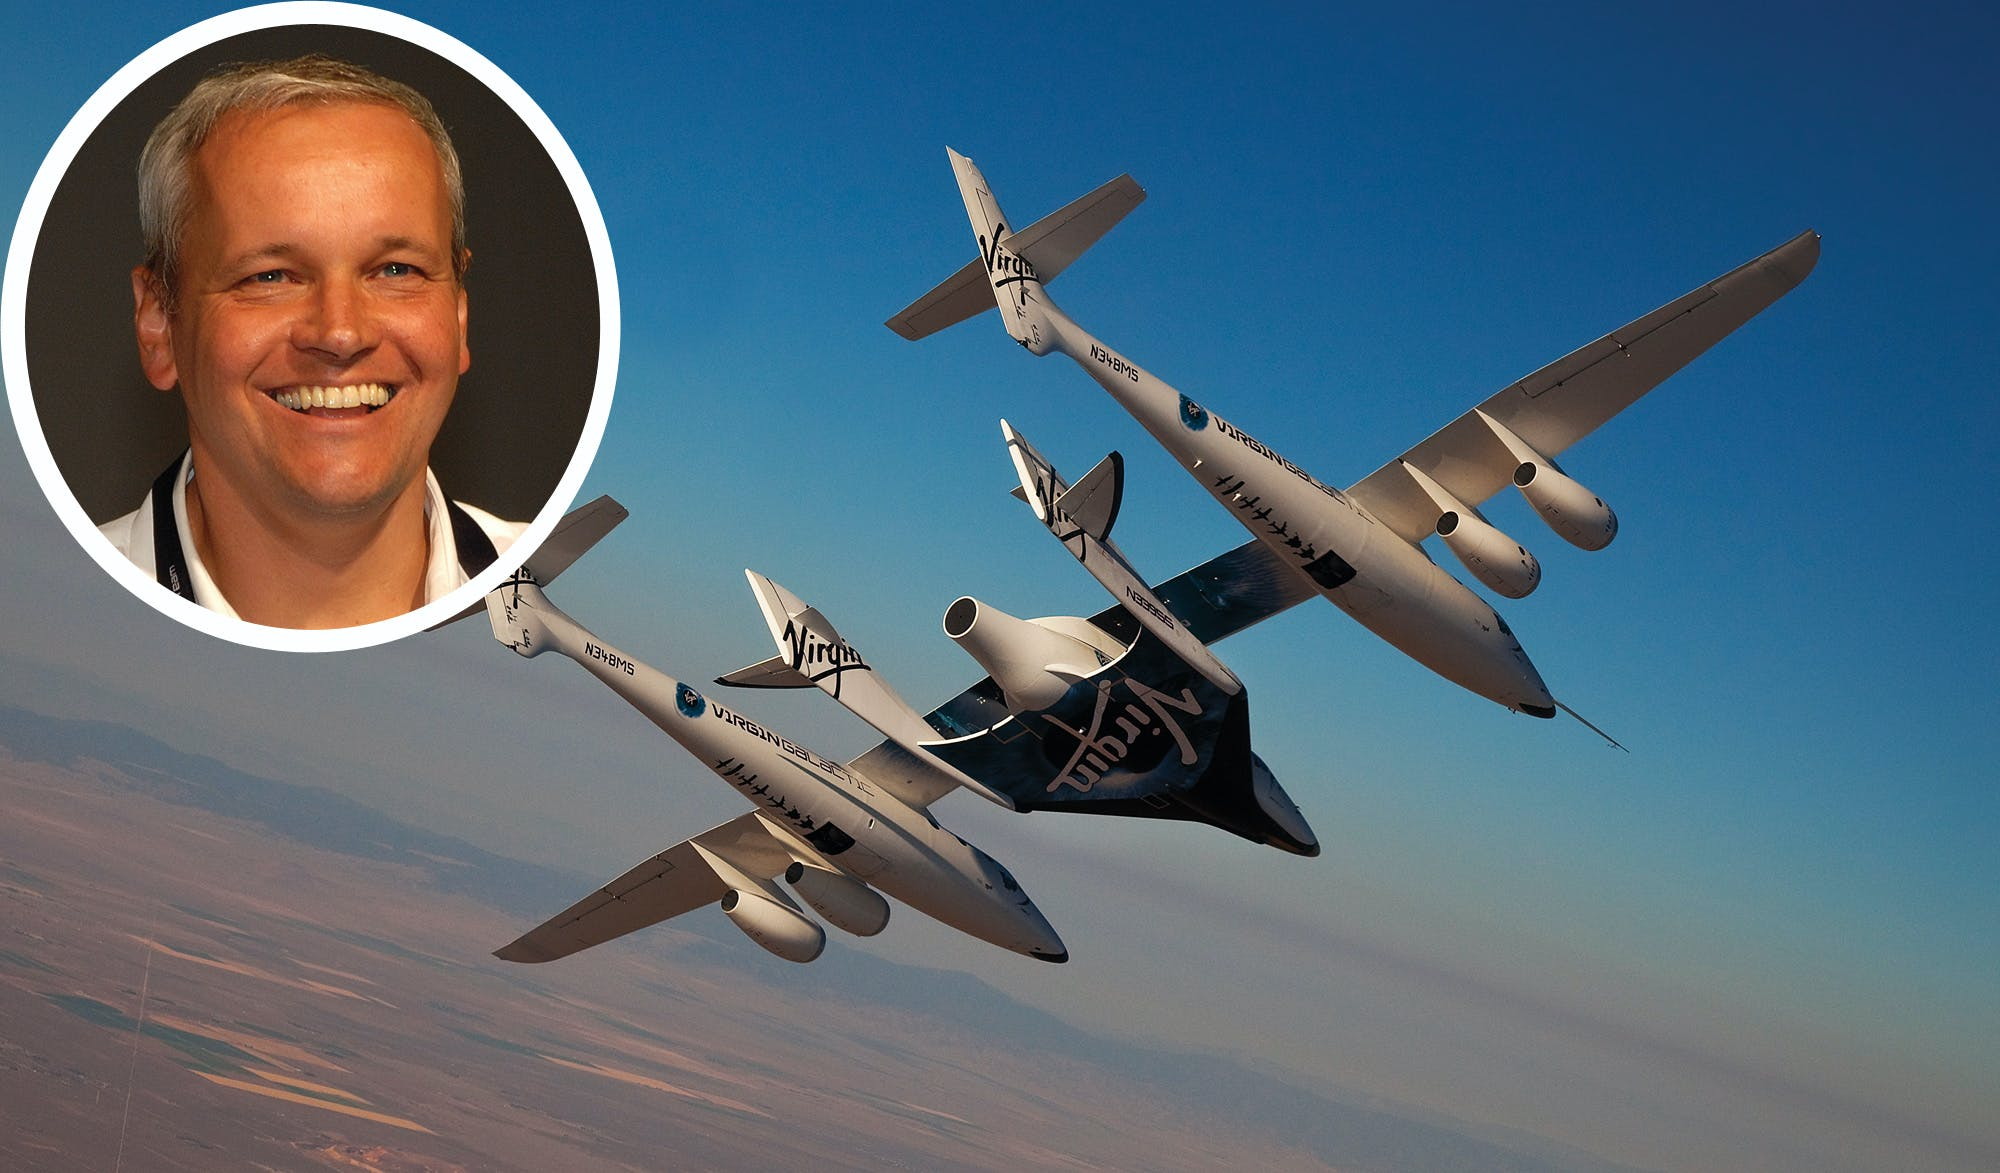 marketing report virgin galactic Virgin galactic is comprised of hundreds of dedicated and passionate professionals united in creating something new and lasting: the world's first commercial spaceline.